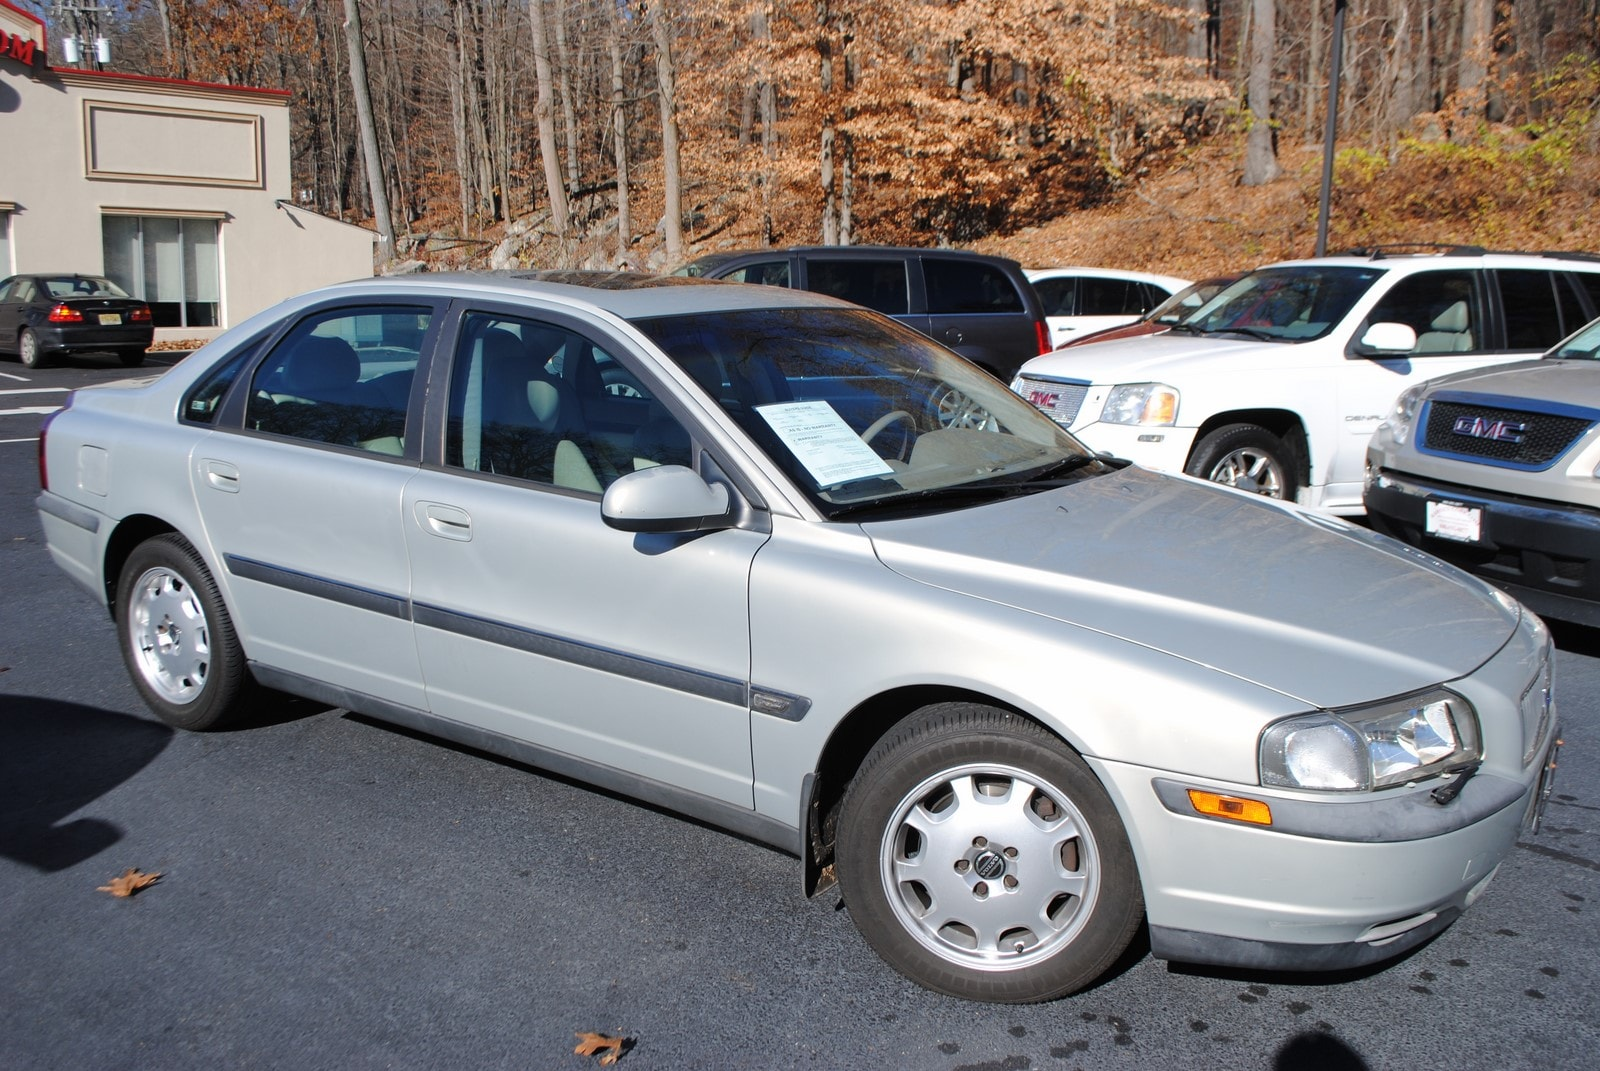 used 2001 volvo s80 for sale west milford nj. Black Bedroom Furniture Sets. Home Design Ideas